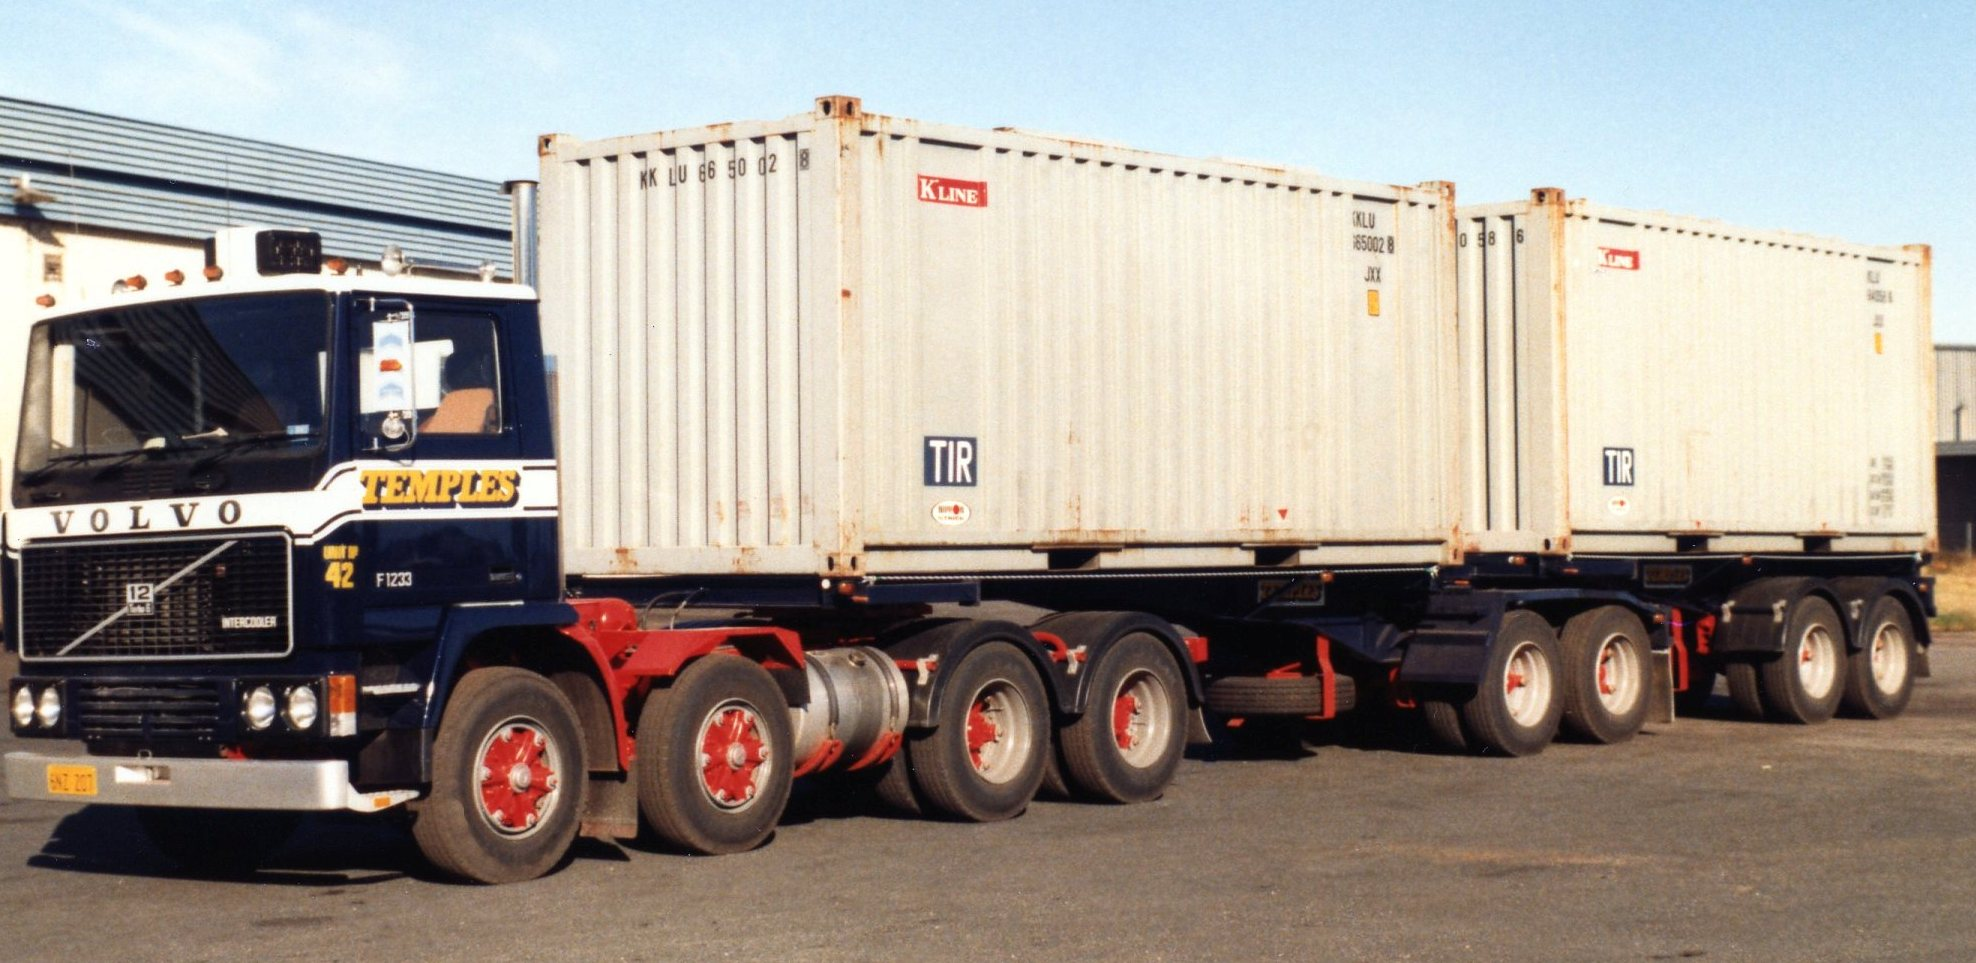 The first ever b-double to hit Australia's roads, with Canadian b-train design and equal length trailers